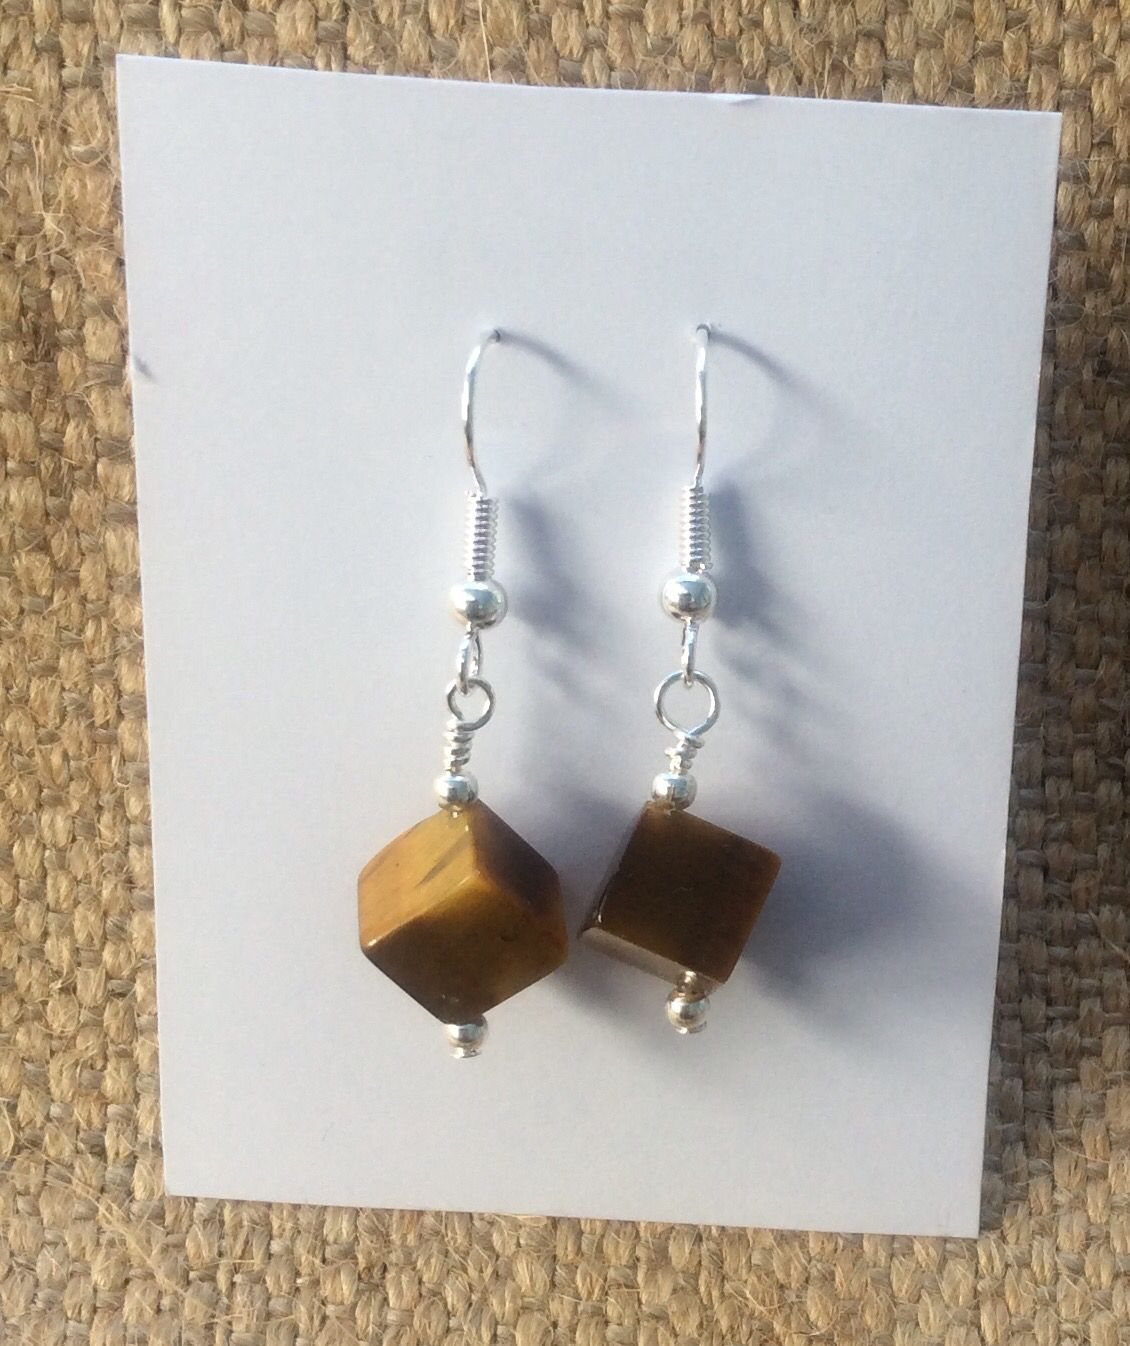 Tigers eye earrings from Mums jewellery shed on Facebook.